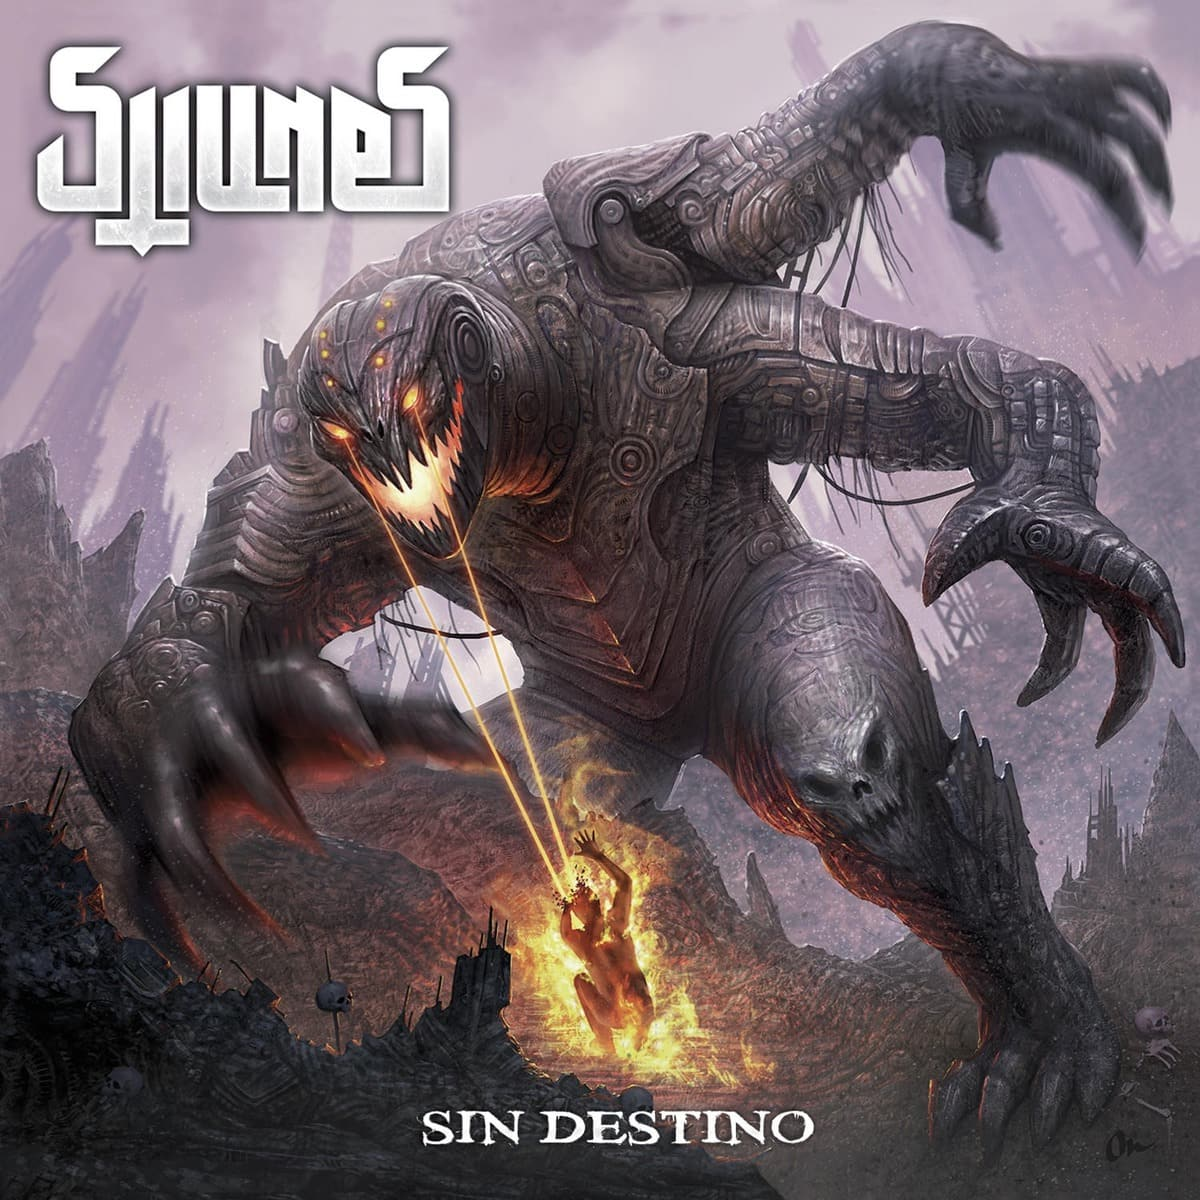 STILLNES – Sin destino, 2015